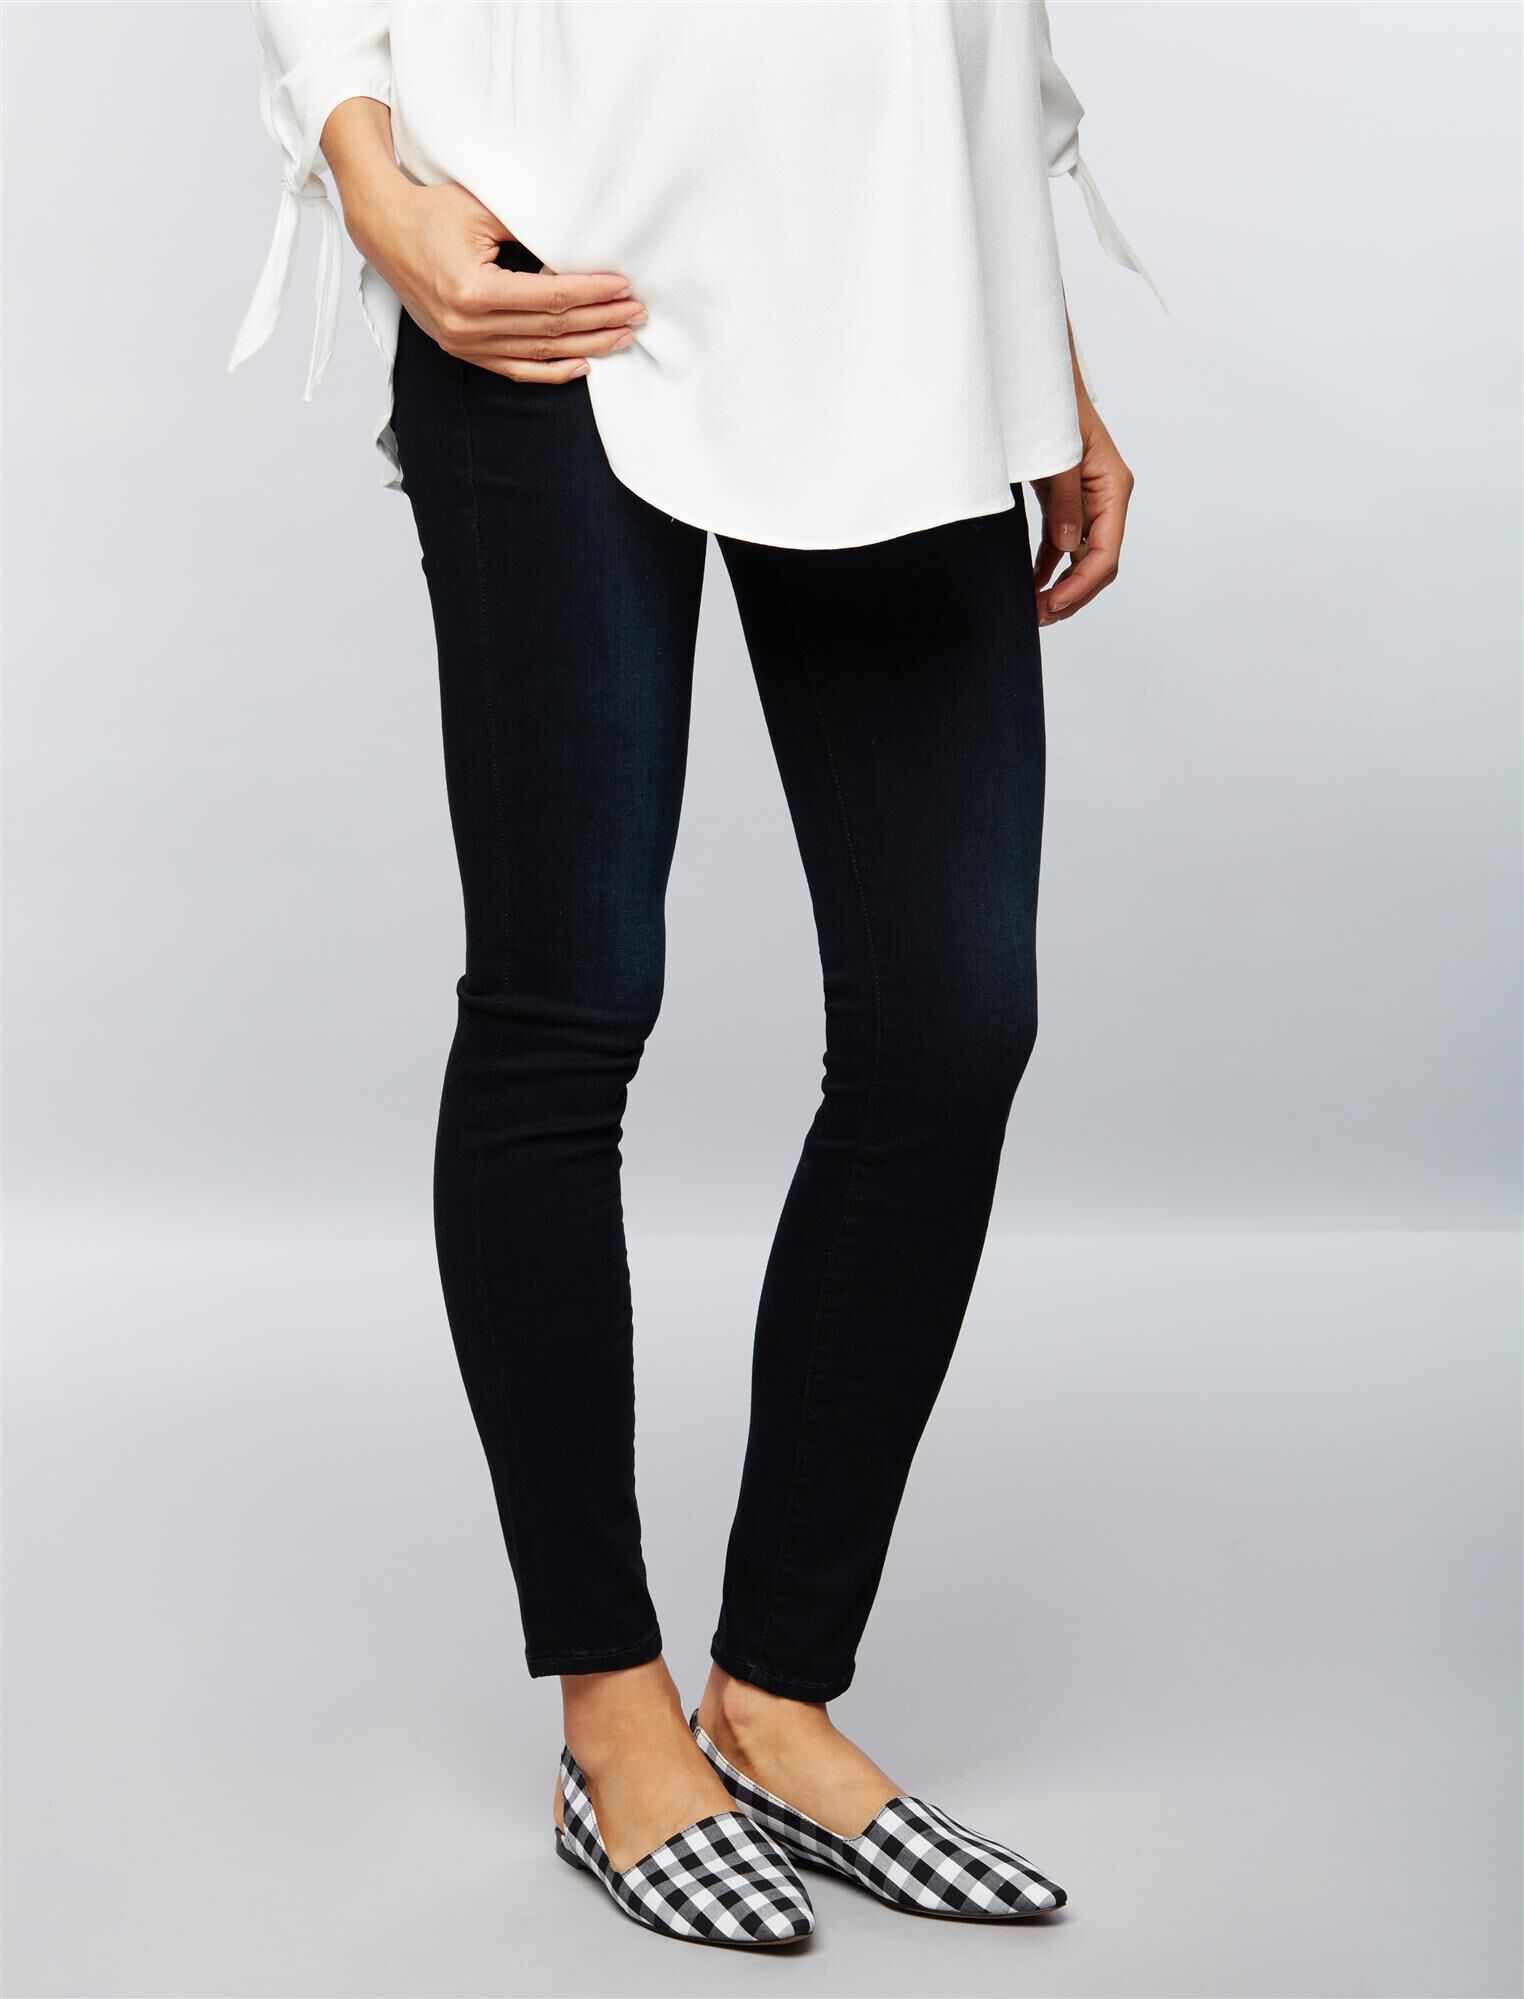 FRAME Secret Fit Belly Le Skinny de Jeanne Maternity Jeans- Manor Ave